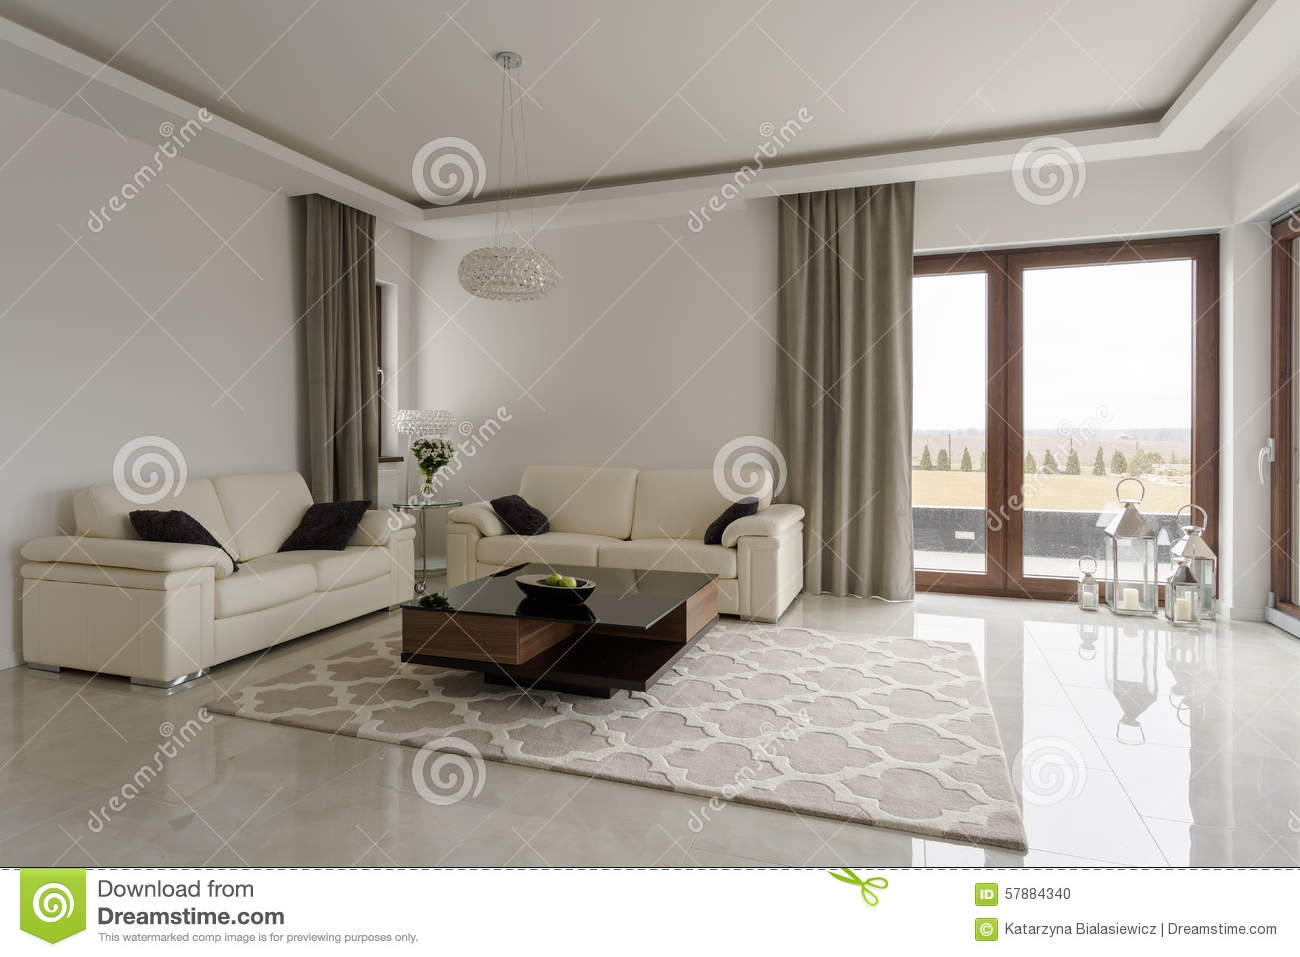 Exclusive family room